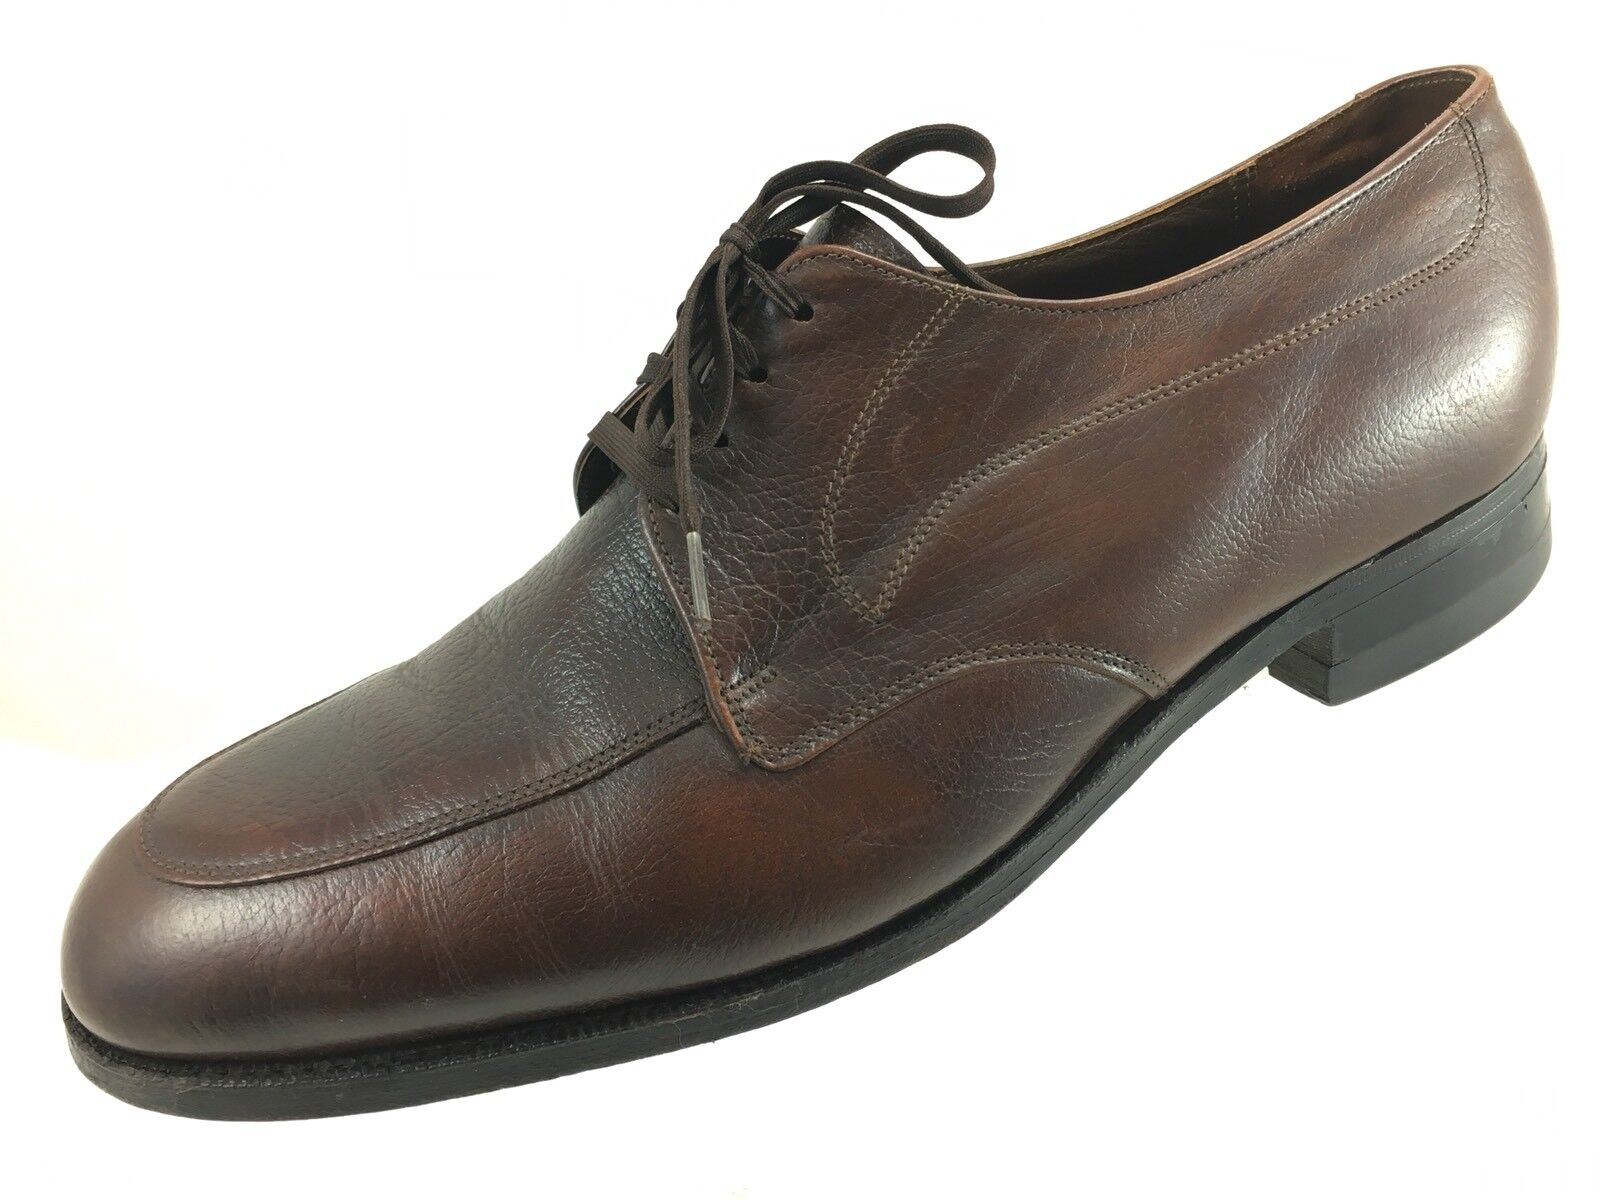 SH1 Vtg Florsheim 9.5D Brown Leather Apron Toe Derby Oxford Dress shoes